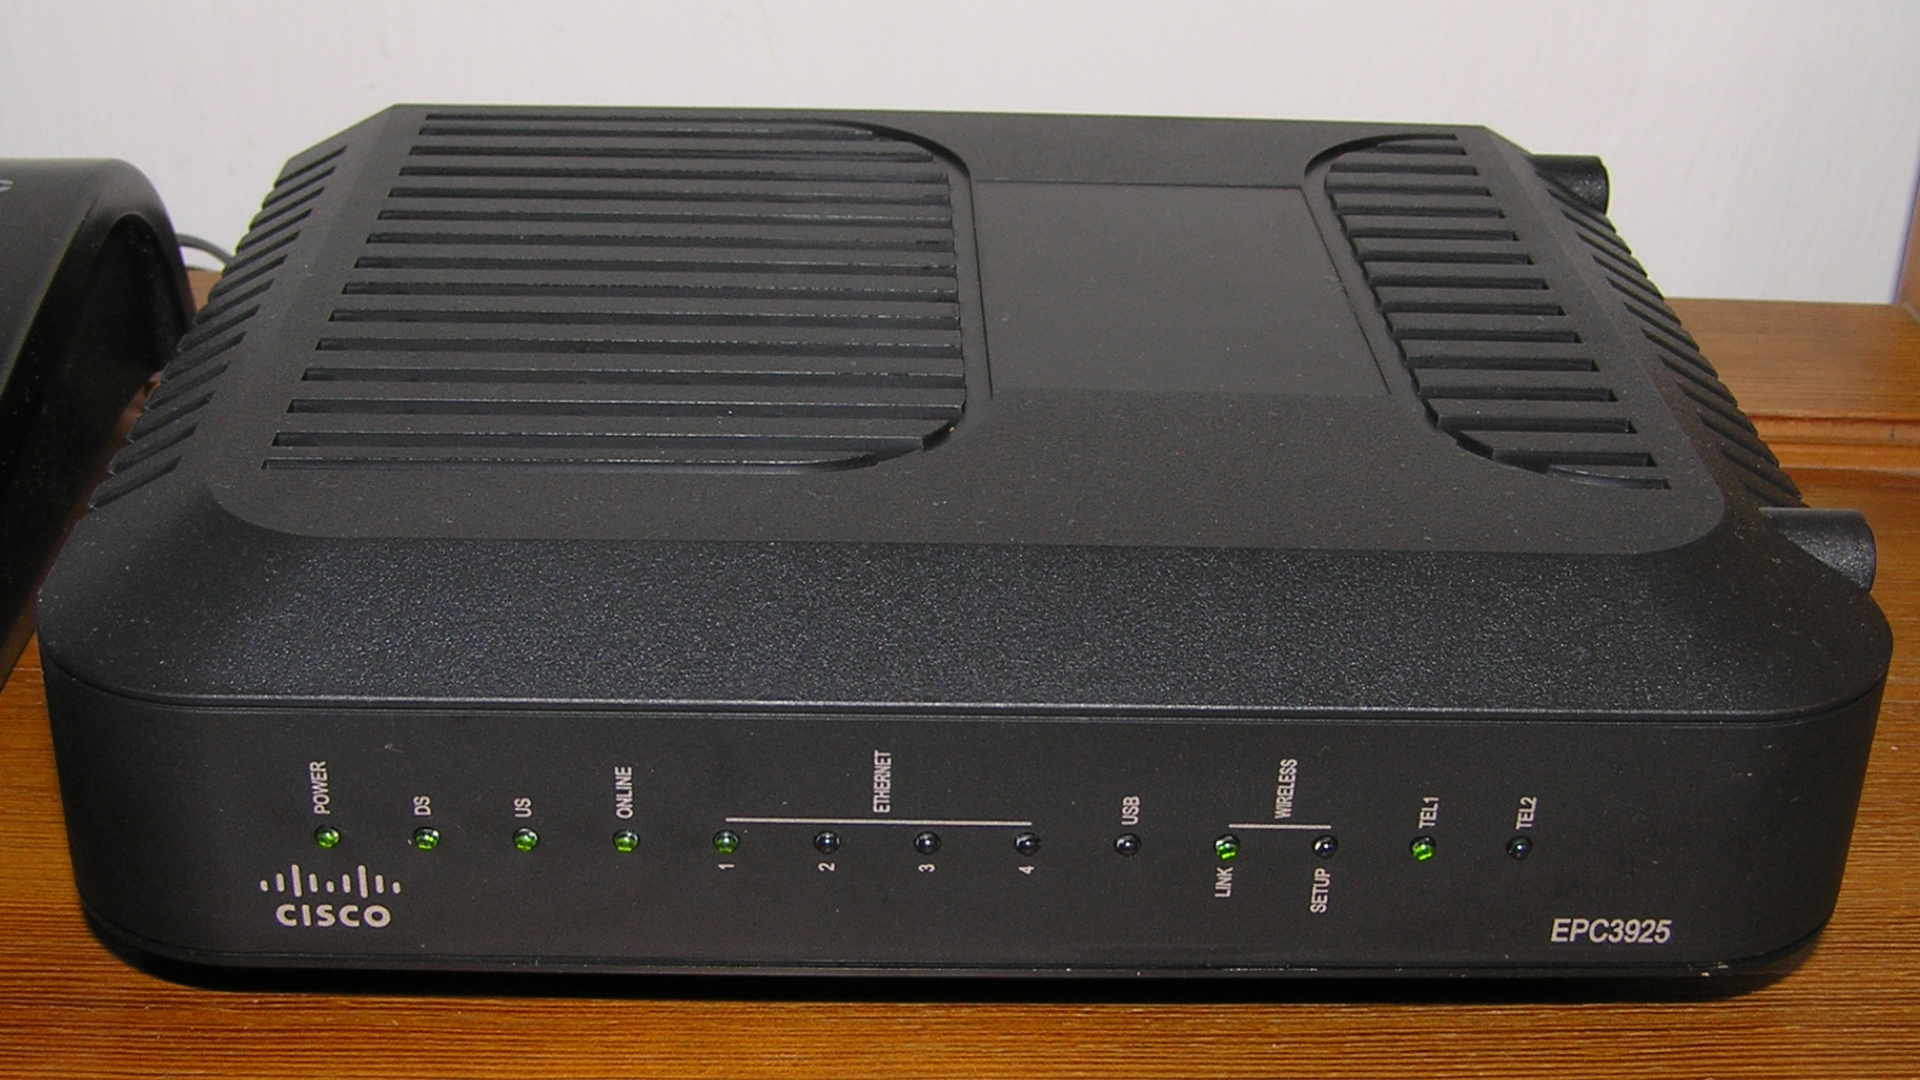 Residential gateway wikipedia cisco epc3925 eurodocsis 3 wireless residential gateway with embedded digital voice adapter publicscrutiny